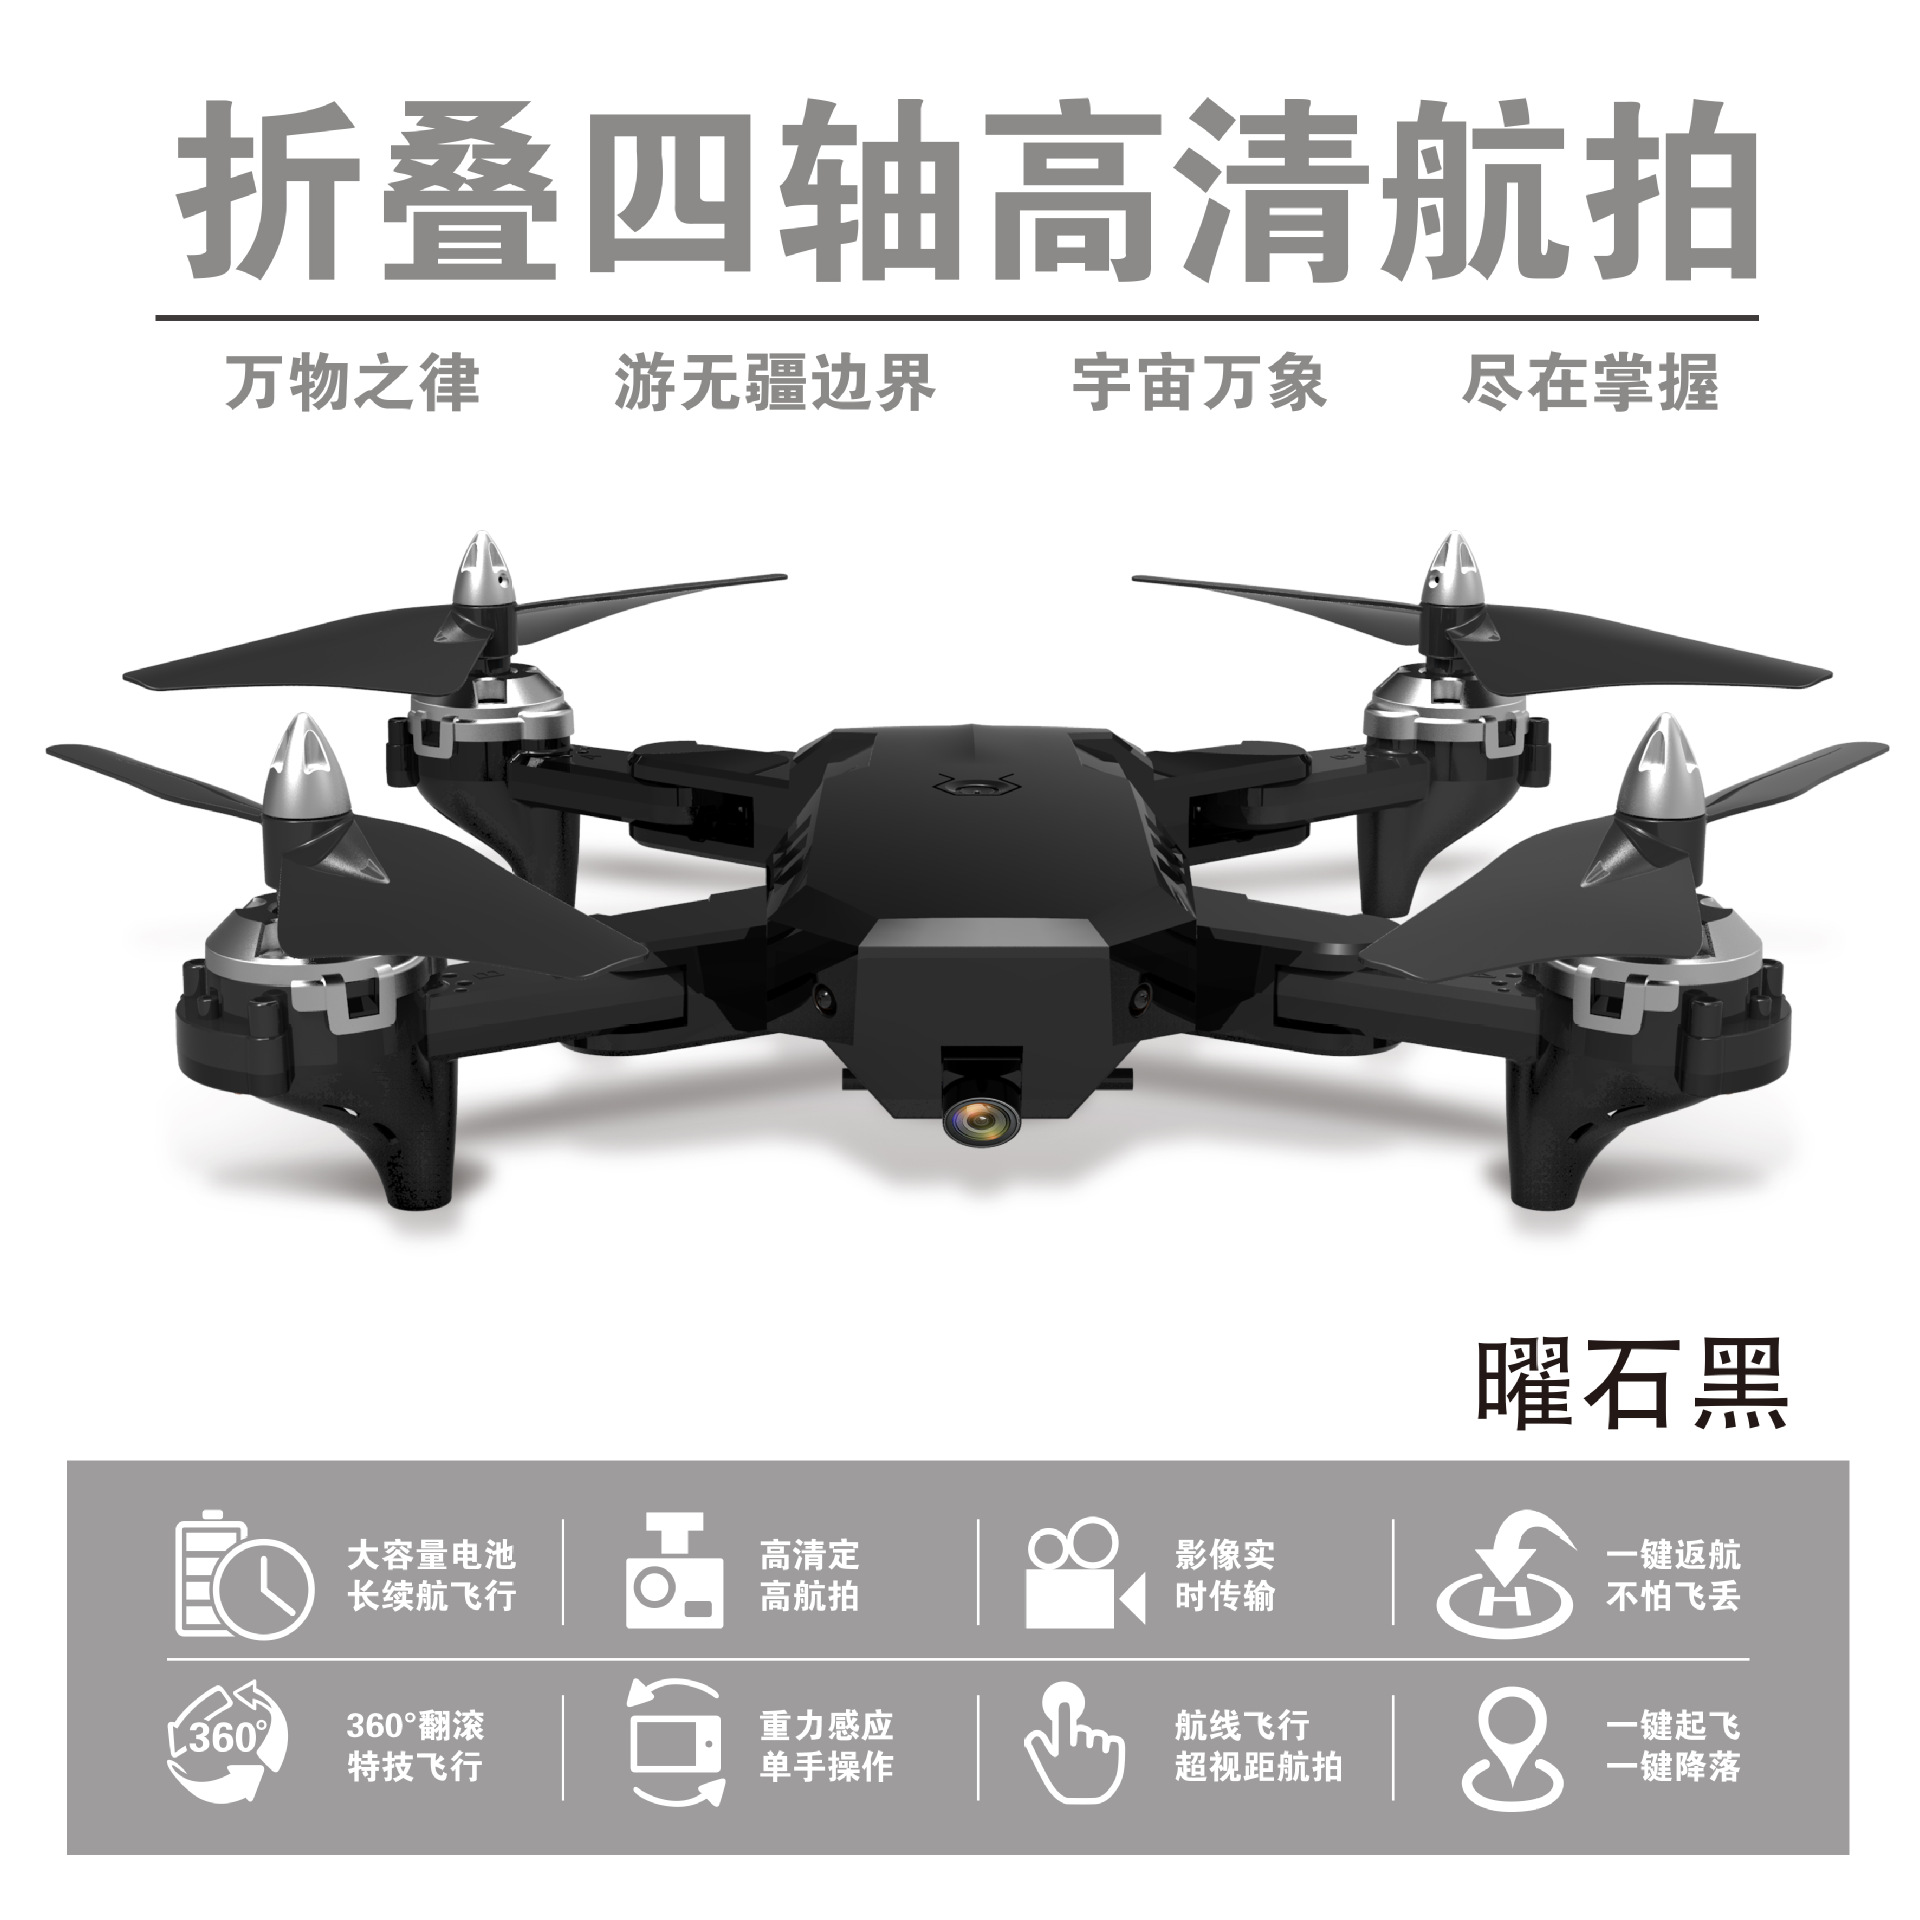 Folding Quadcopter Long Life High Unmanned Aerial Vehicle Real-Time Aerial Remote-control Aircraft CHILDREN'S Toy